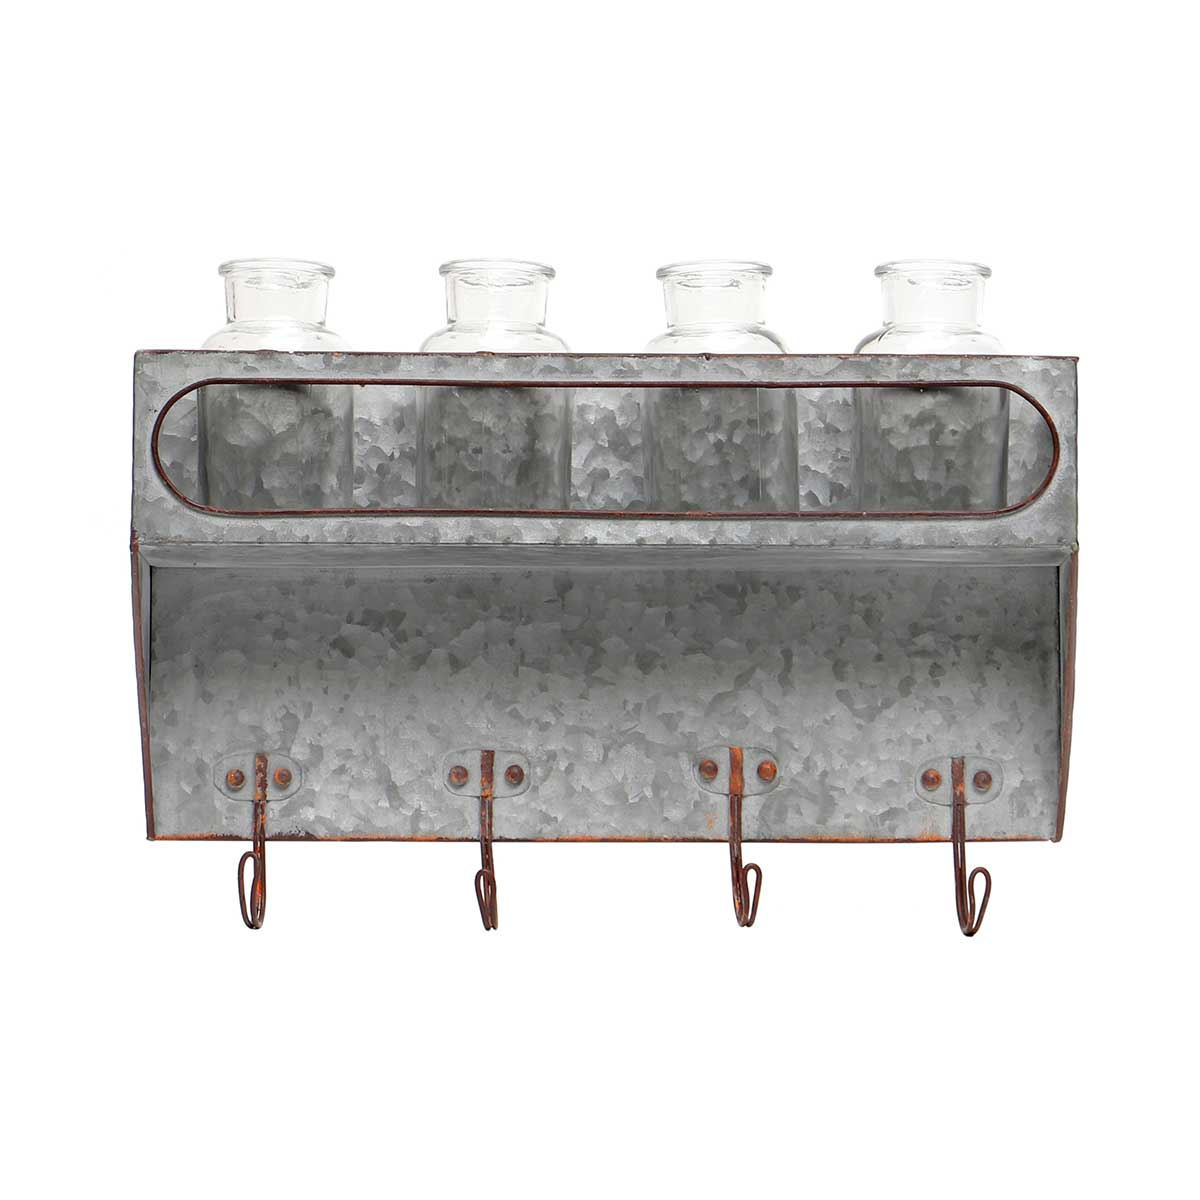 """METAL WALL PIECE WITH 4 GLASS BOTTLES AND HOOKS 15.5""""x3.5""""x11"""""""